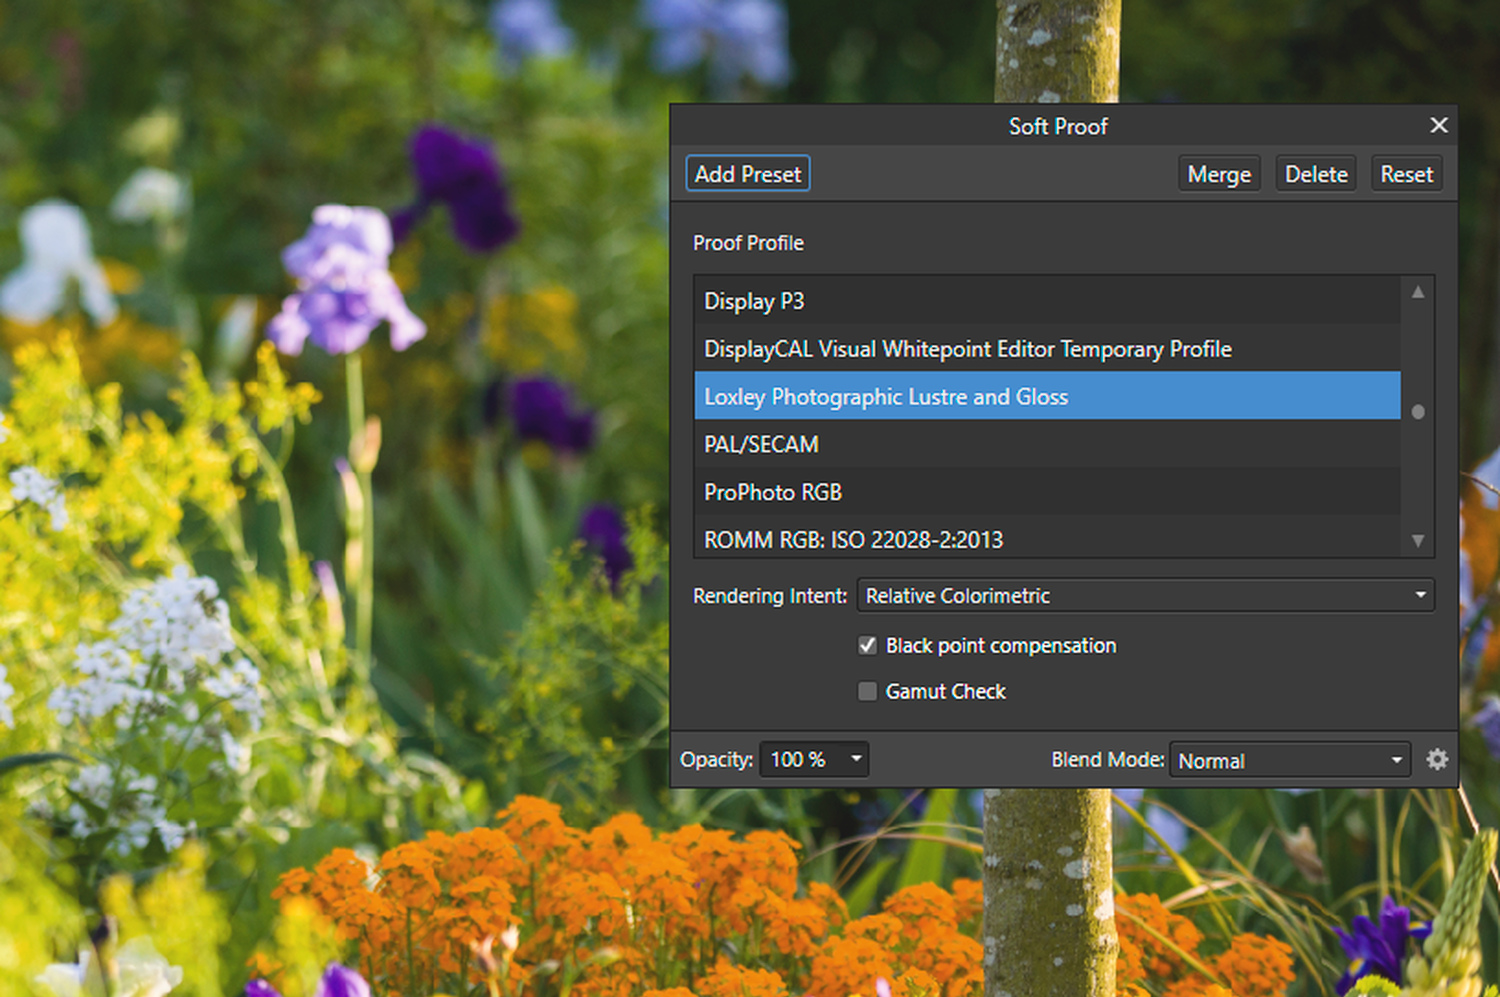 Color management in Affinity photo - soft proofing